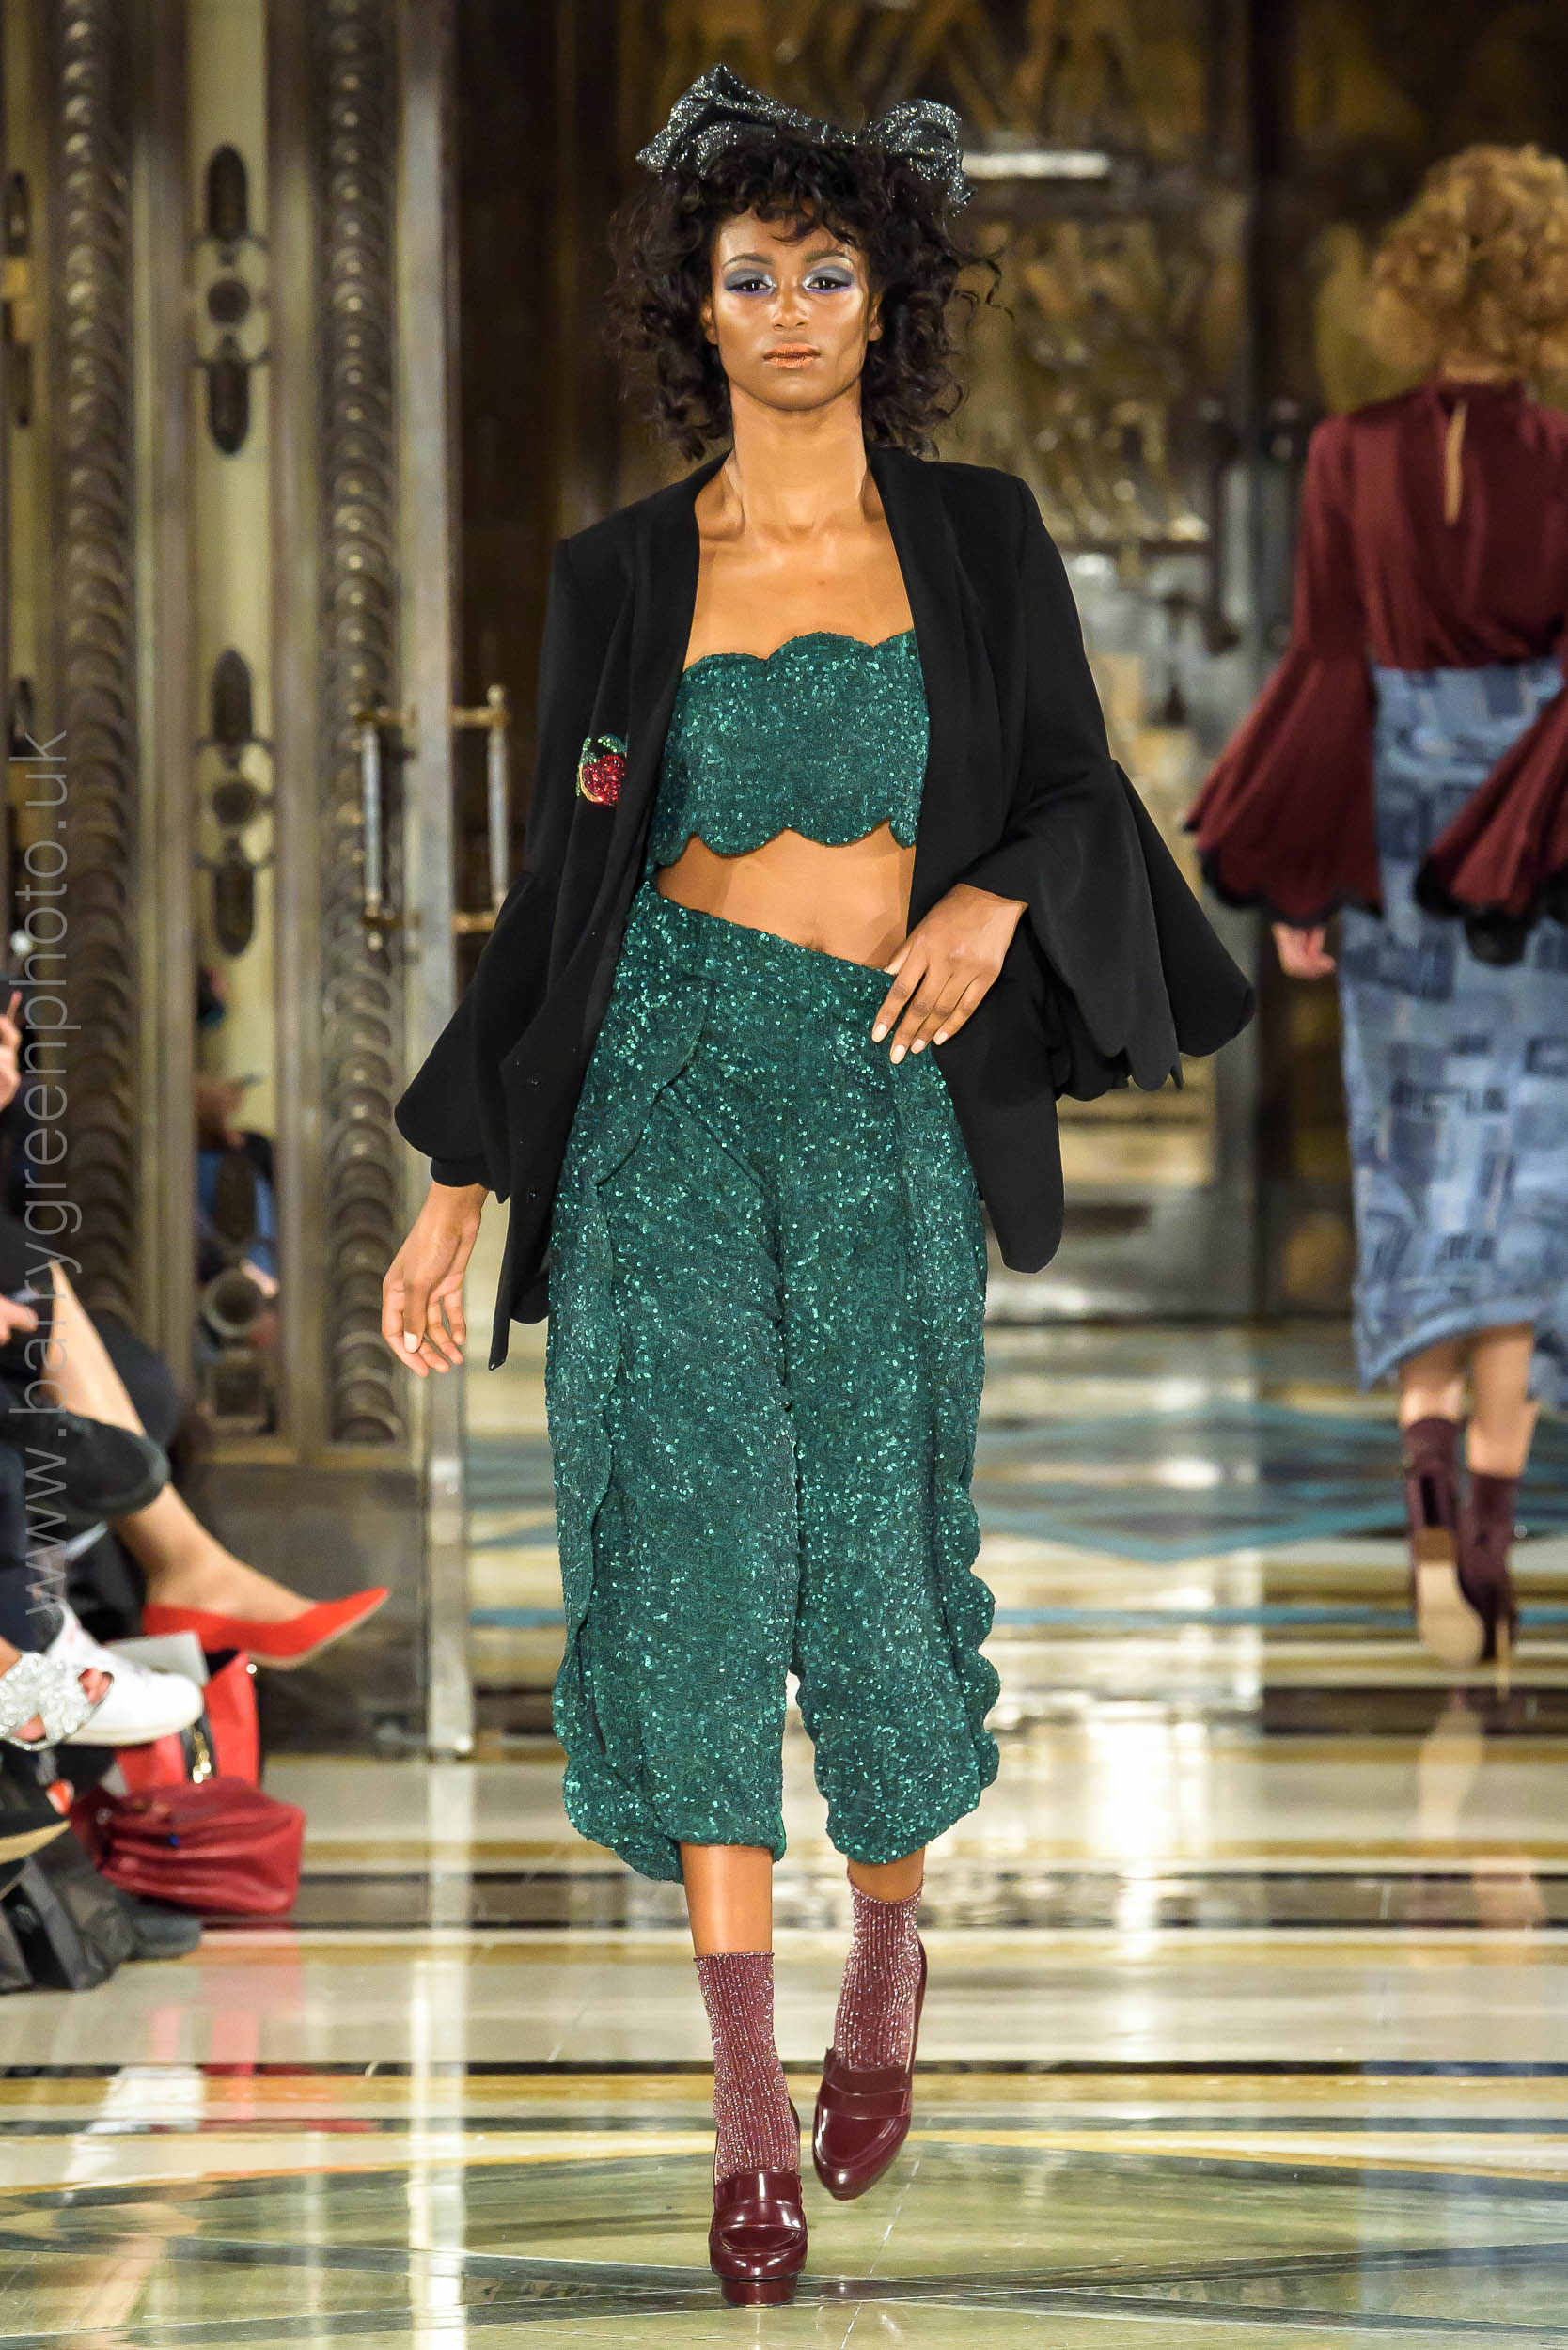 London Fashion Week ss18 catwalk collection by designer Amira Haroon from Dubai Design & Fashion Council DDFC